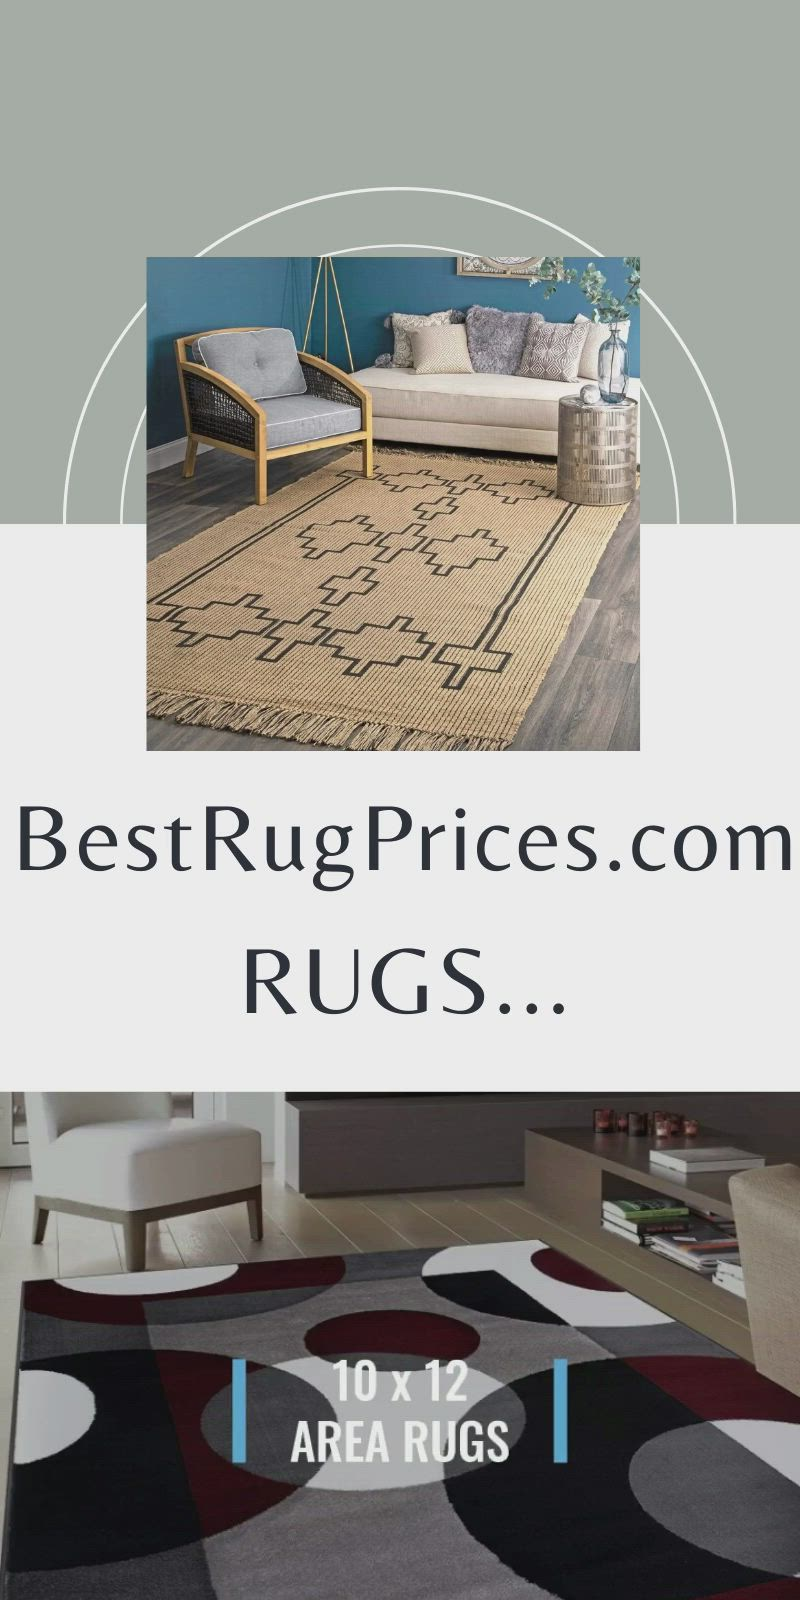 Area Rugs For The Home Living Room Rugs Family Room Rugs Large Area Rugs Dining Room Rugs Video In 2020 Luxury Living Room Minimalist Living Room Family Room Design